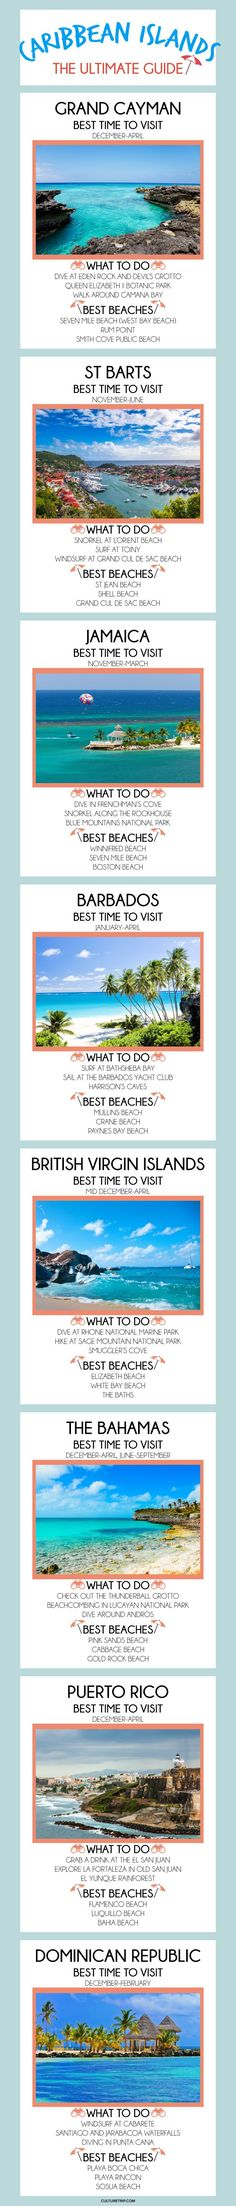 A Quick Guide To to The Caribbean Islands |Pinterest: @theculturetrip